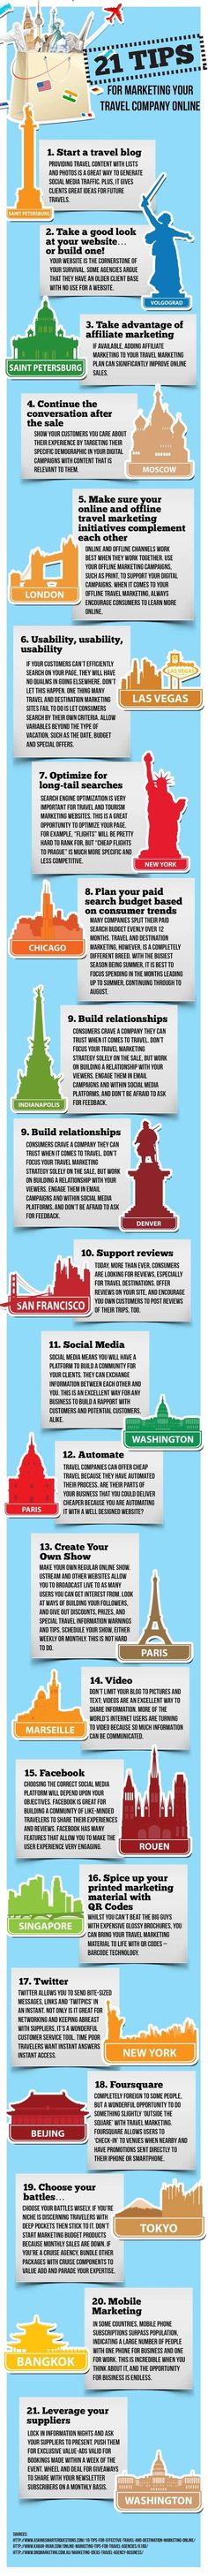 """[infographic] """"21 tips for Marketing your Travel Company Online"""" May-2012 by Baltictraelcompany.com:"""